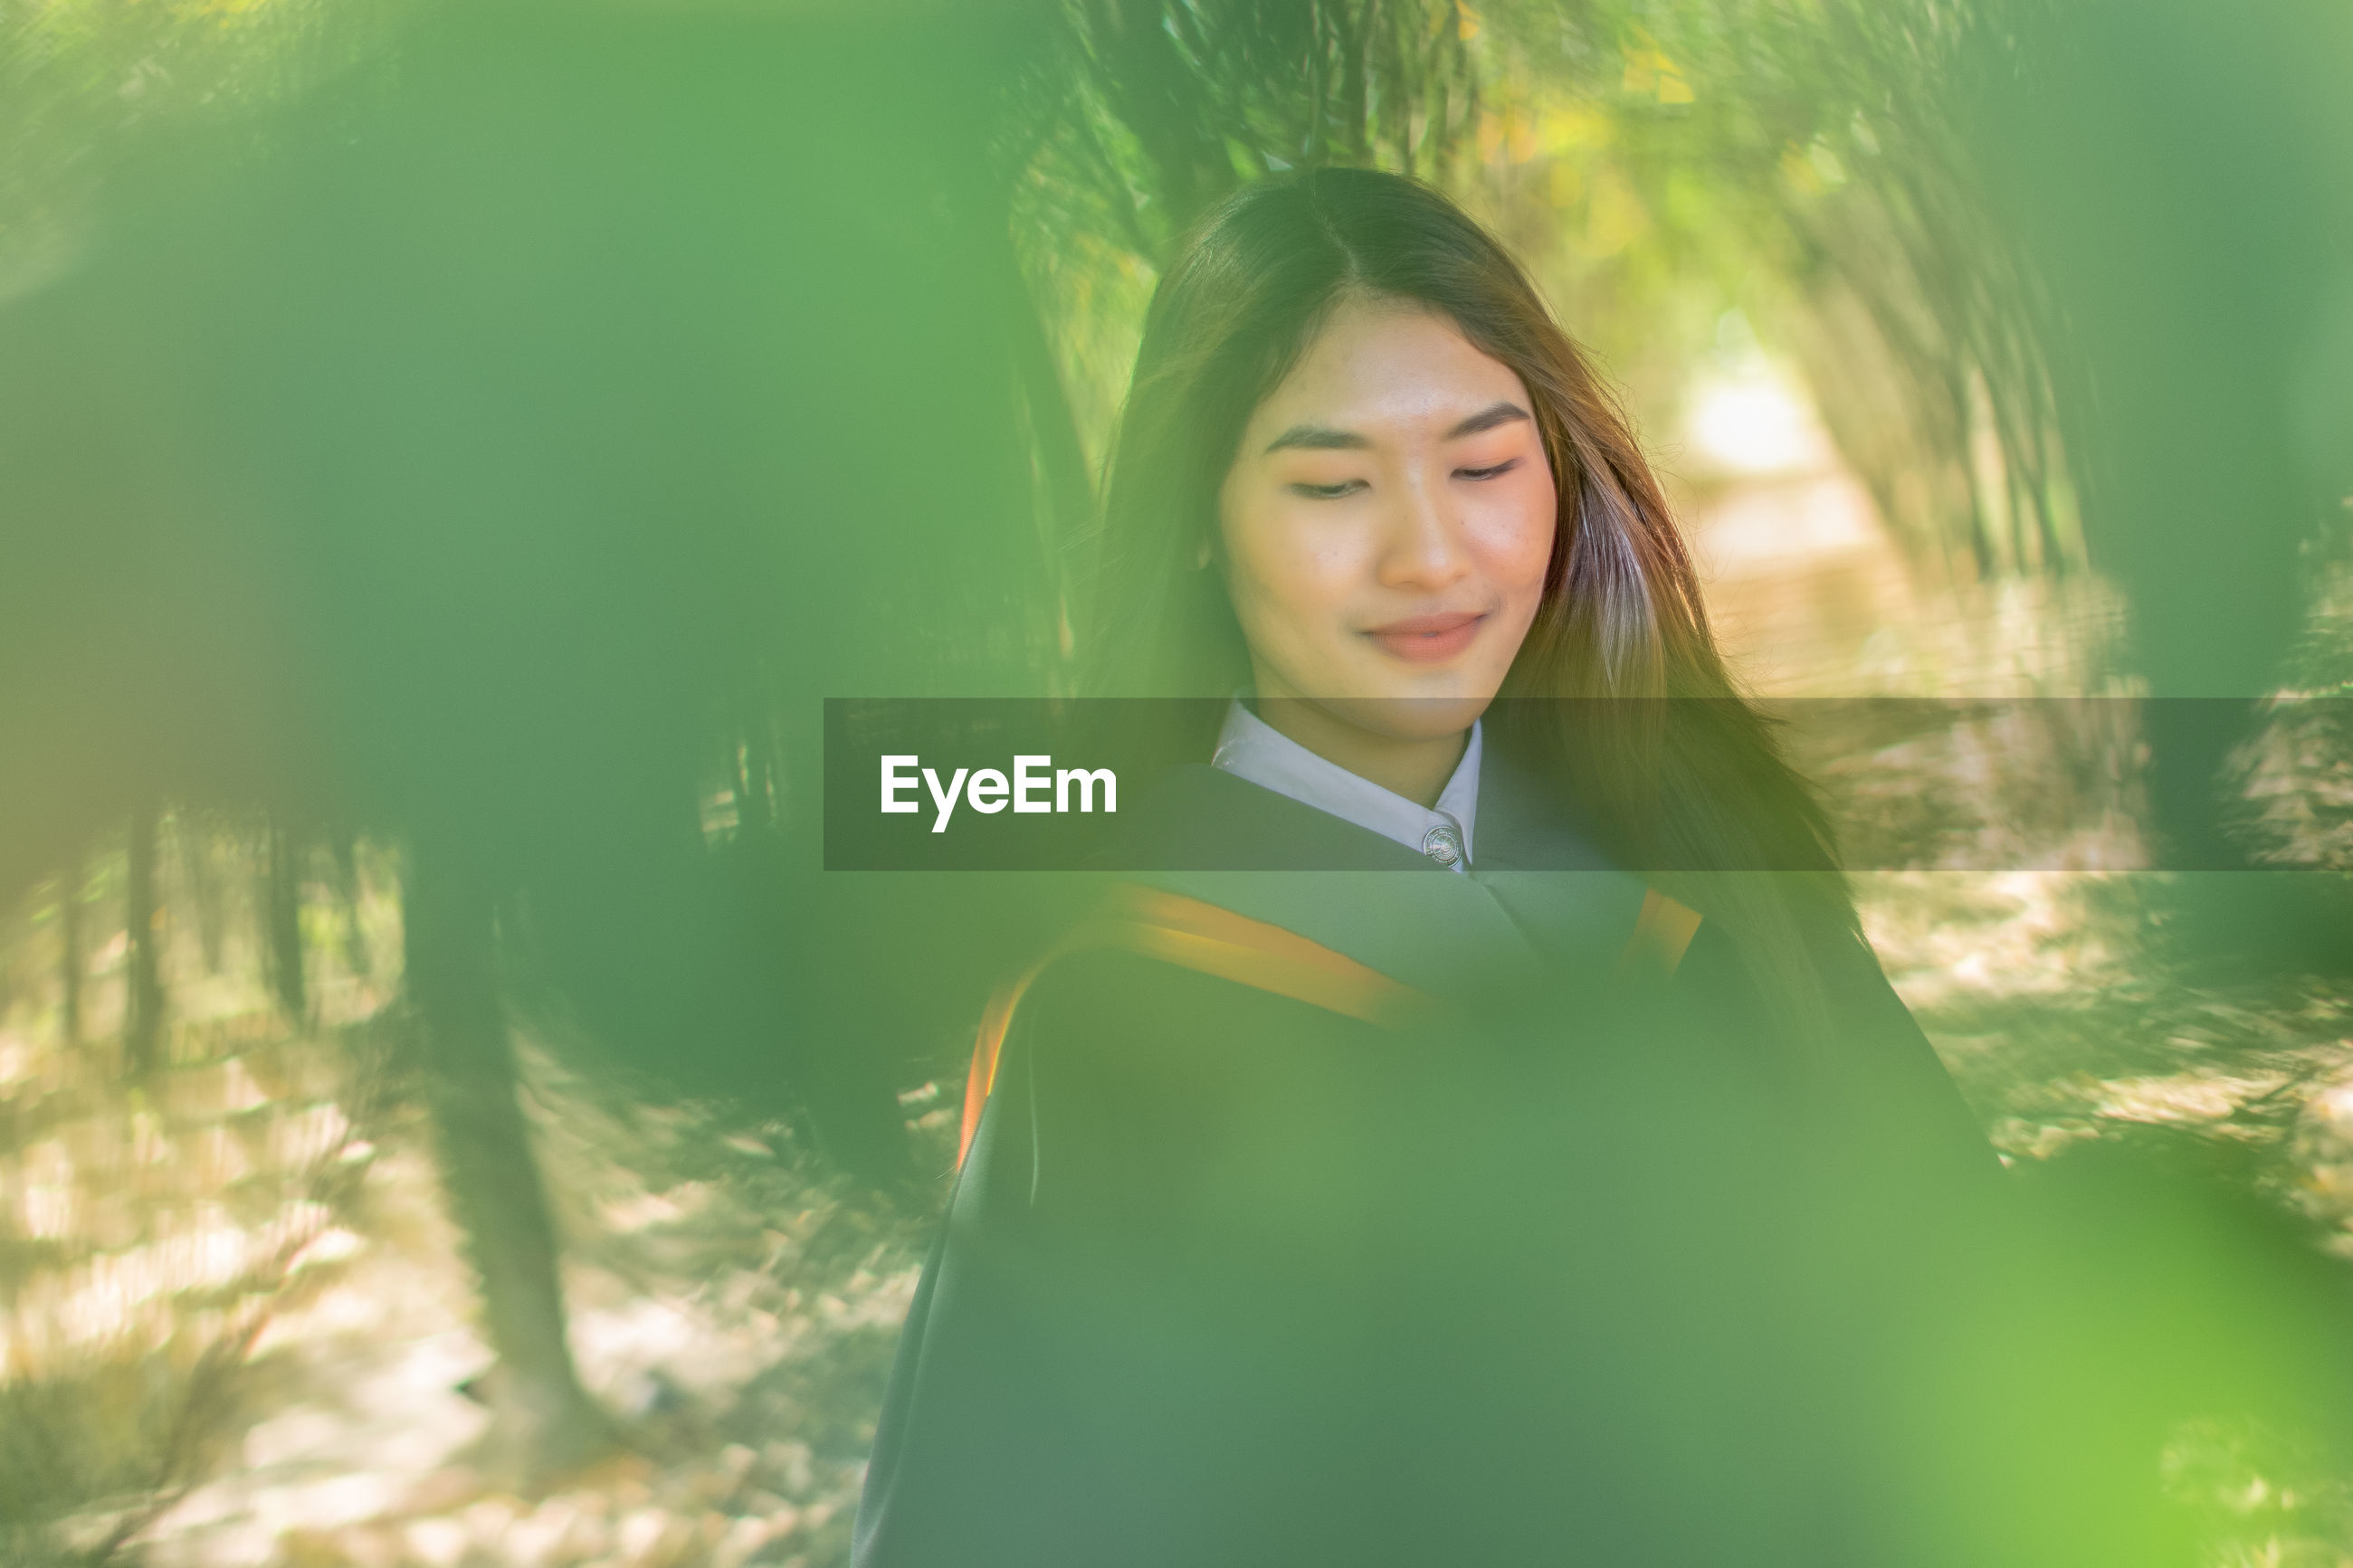 Smiling young woman with eyes closed standing in forest